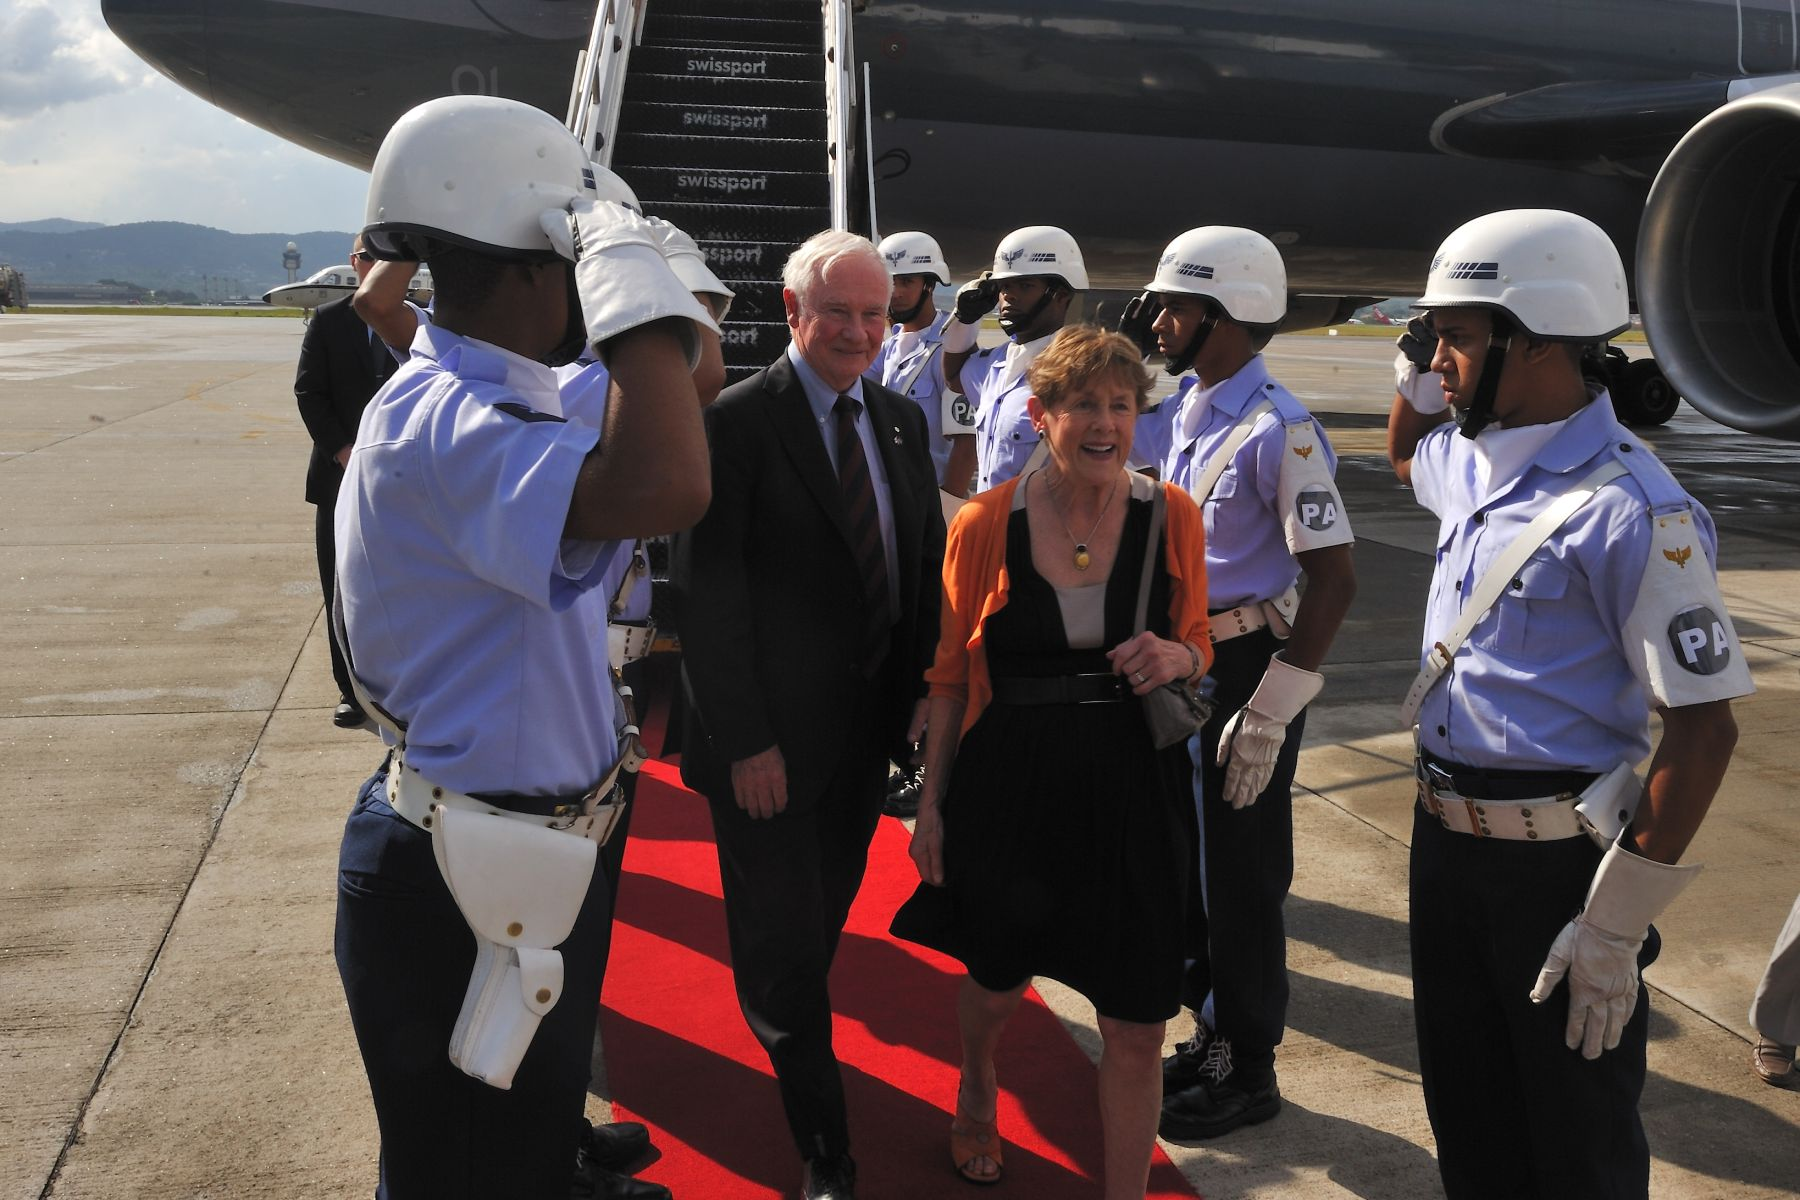 Upon their arrival in São Paulo, Their Excellencies were welcomed by government officials.